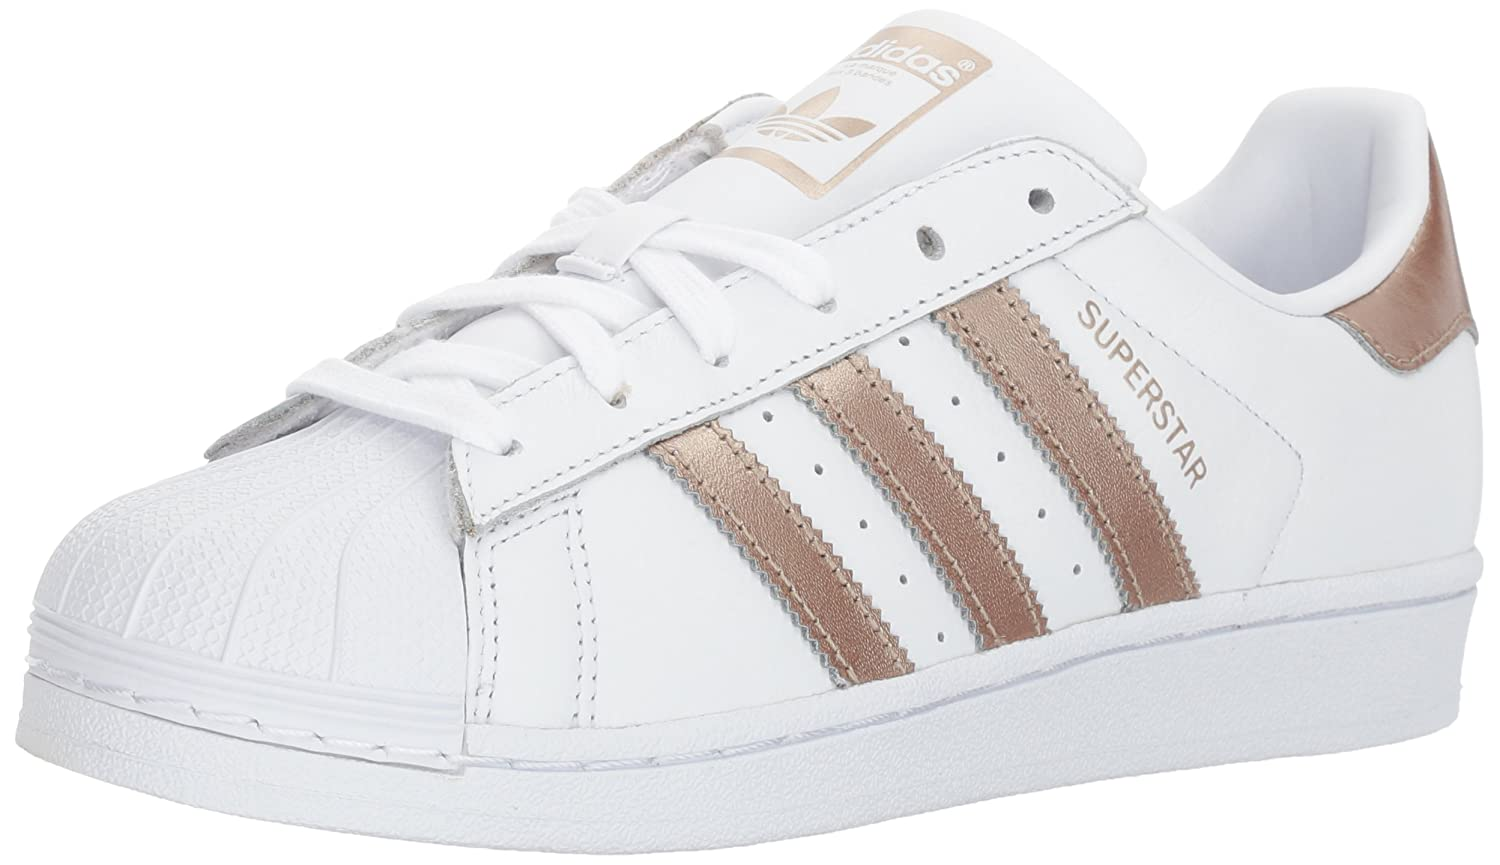 newest 0fb45 ccac1 Amazon.com   adidas Originals Women s Superstar Shoes Sneaker   Road Running